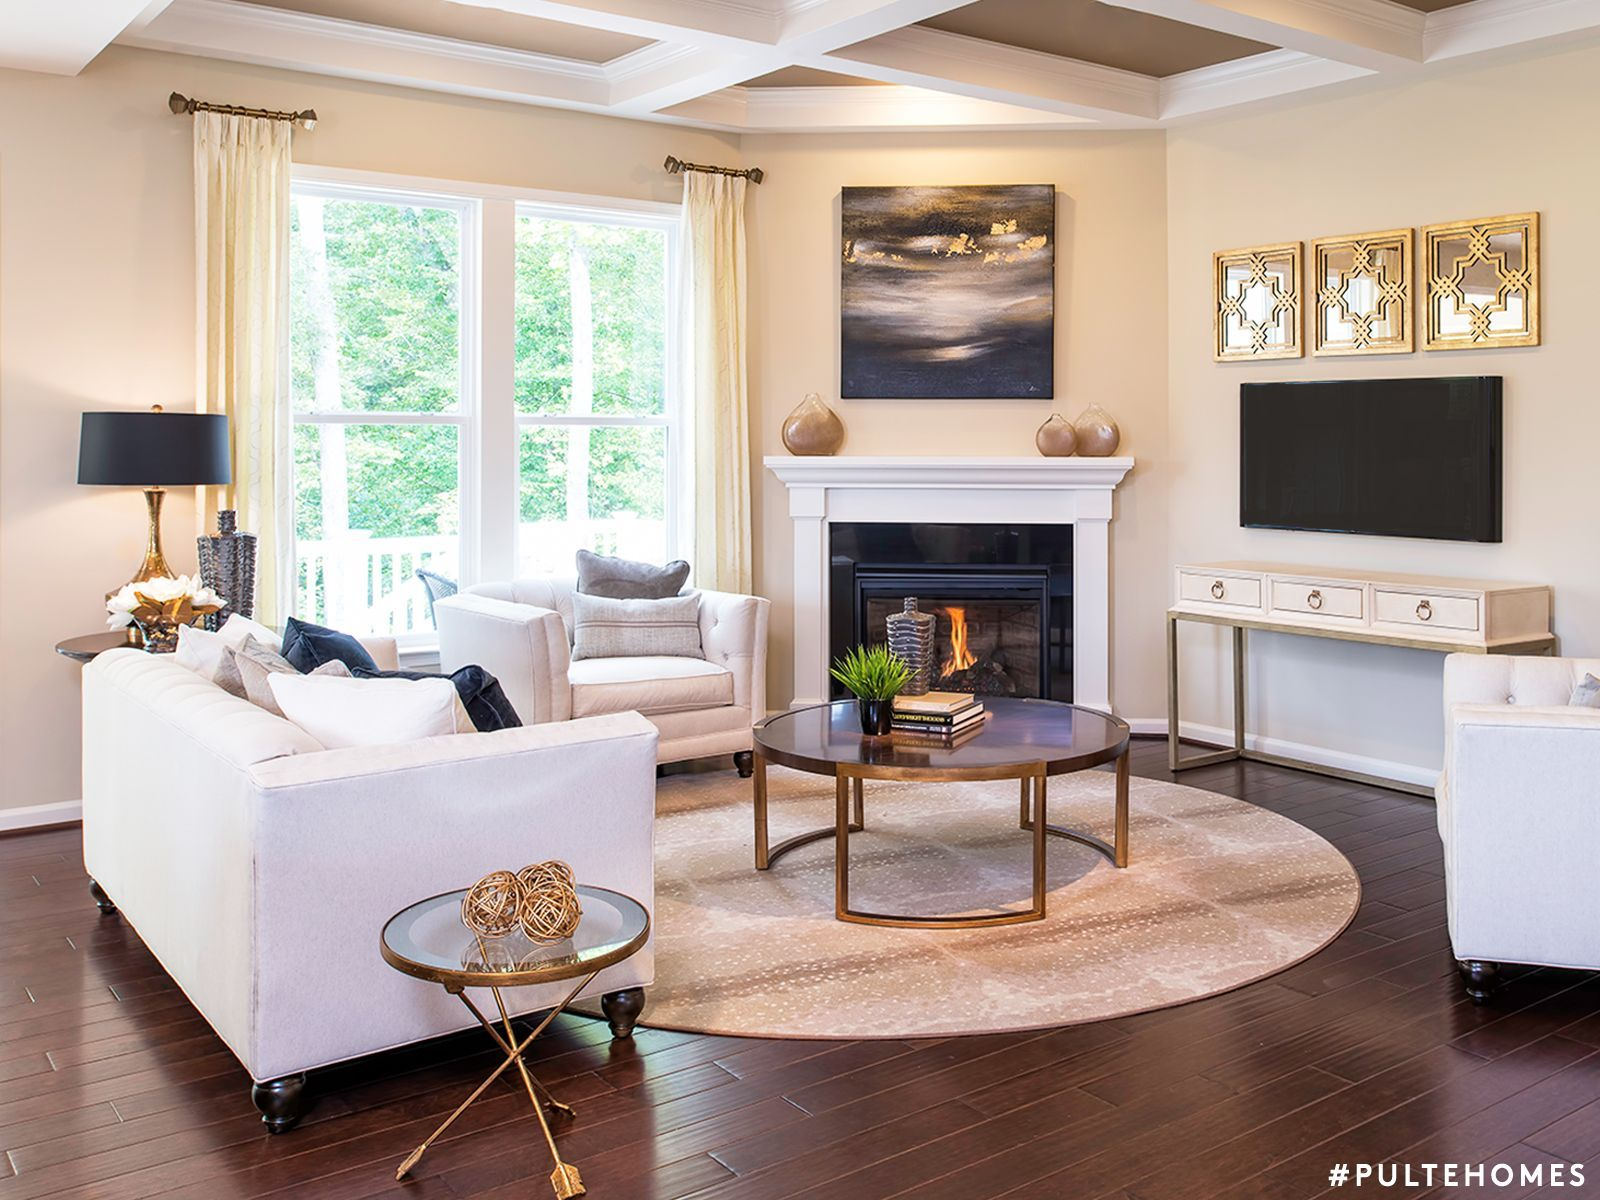 13 Best Corner Fireplace Ideas For Small Space Corner Fireplace